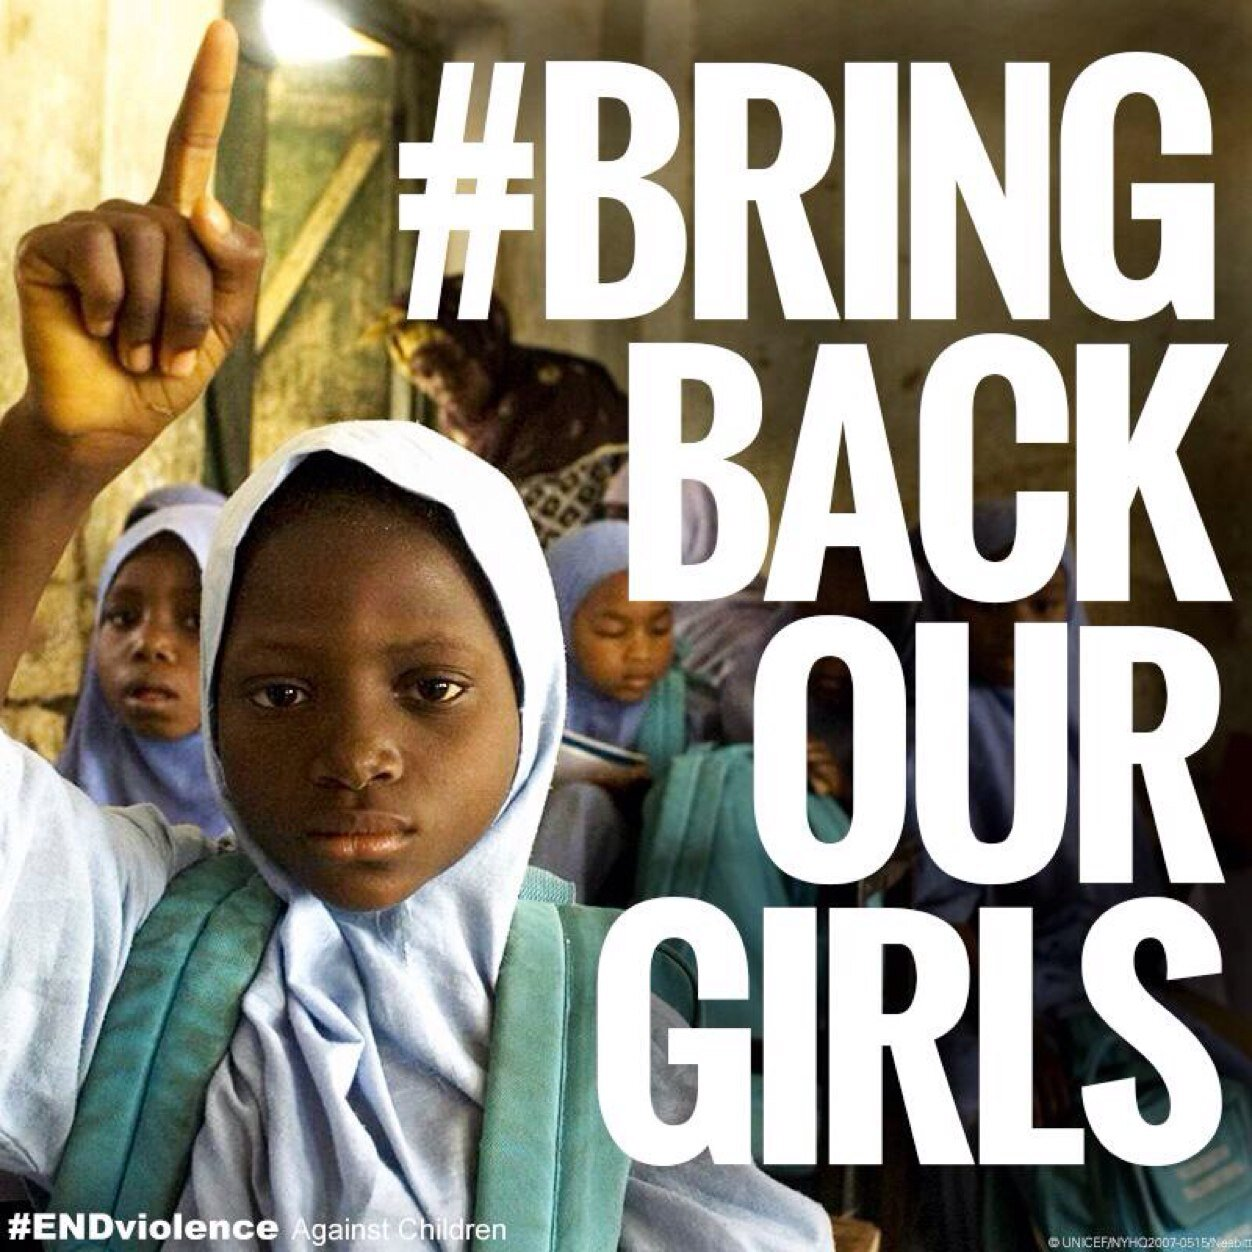 Families of kidnapped girls need encouragement